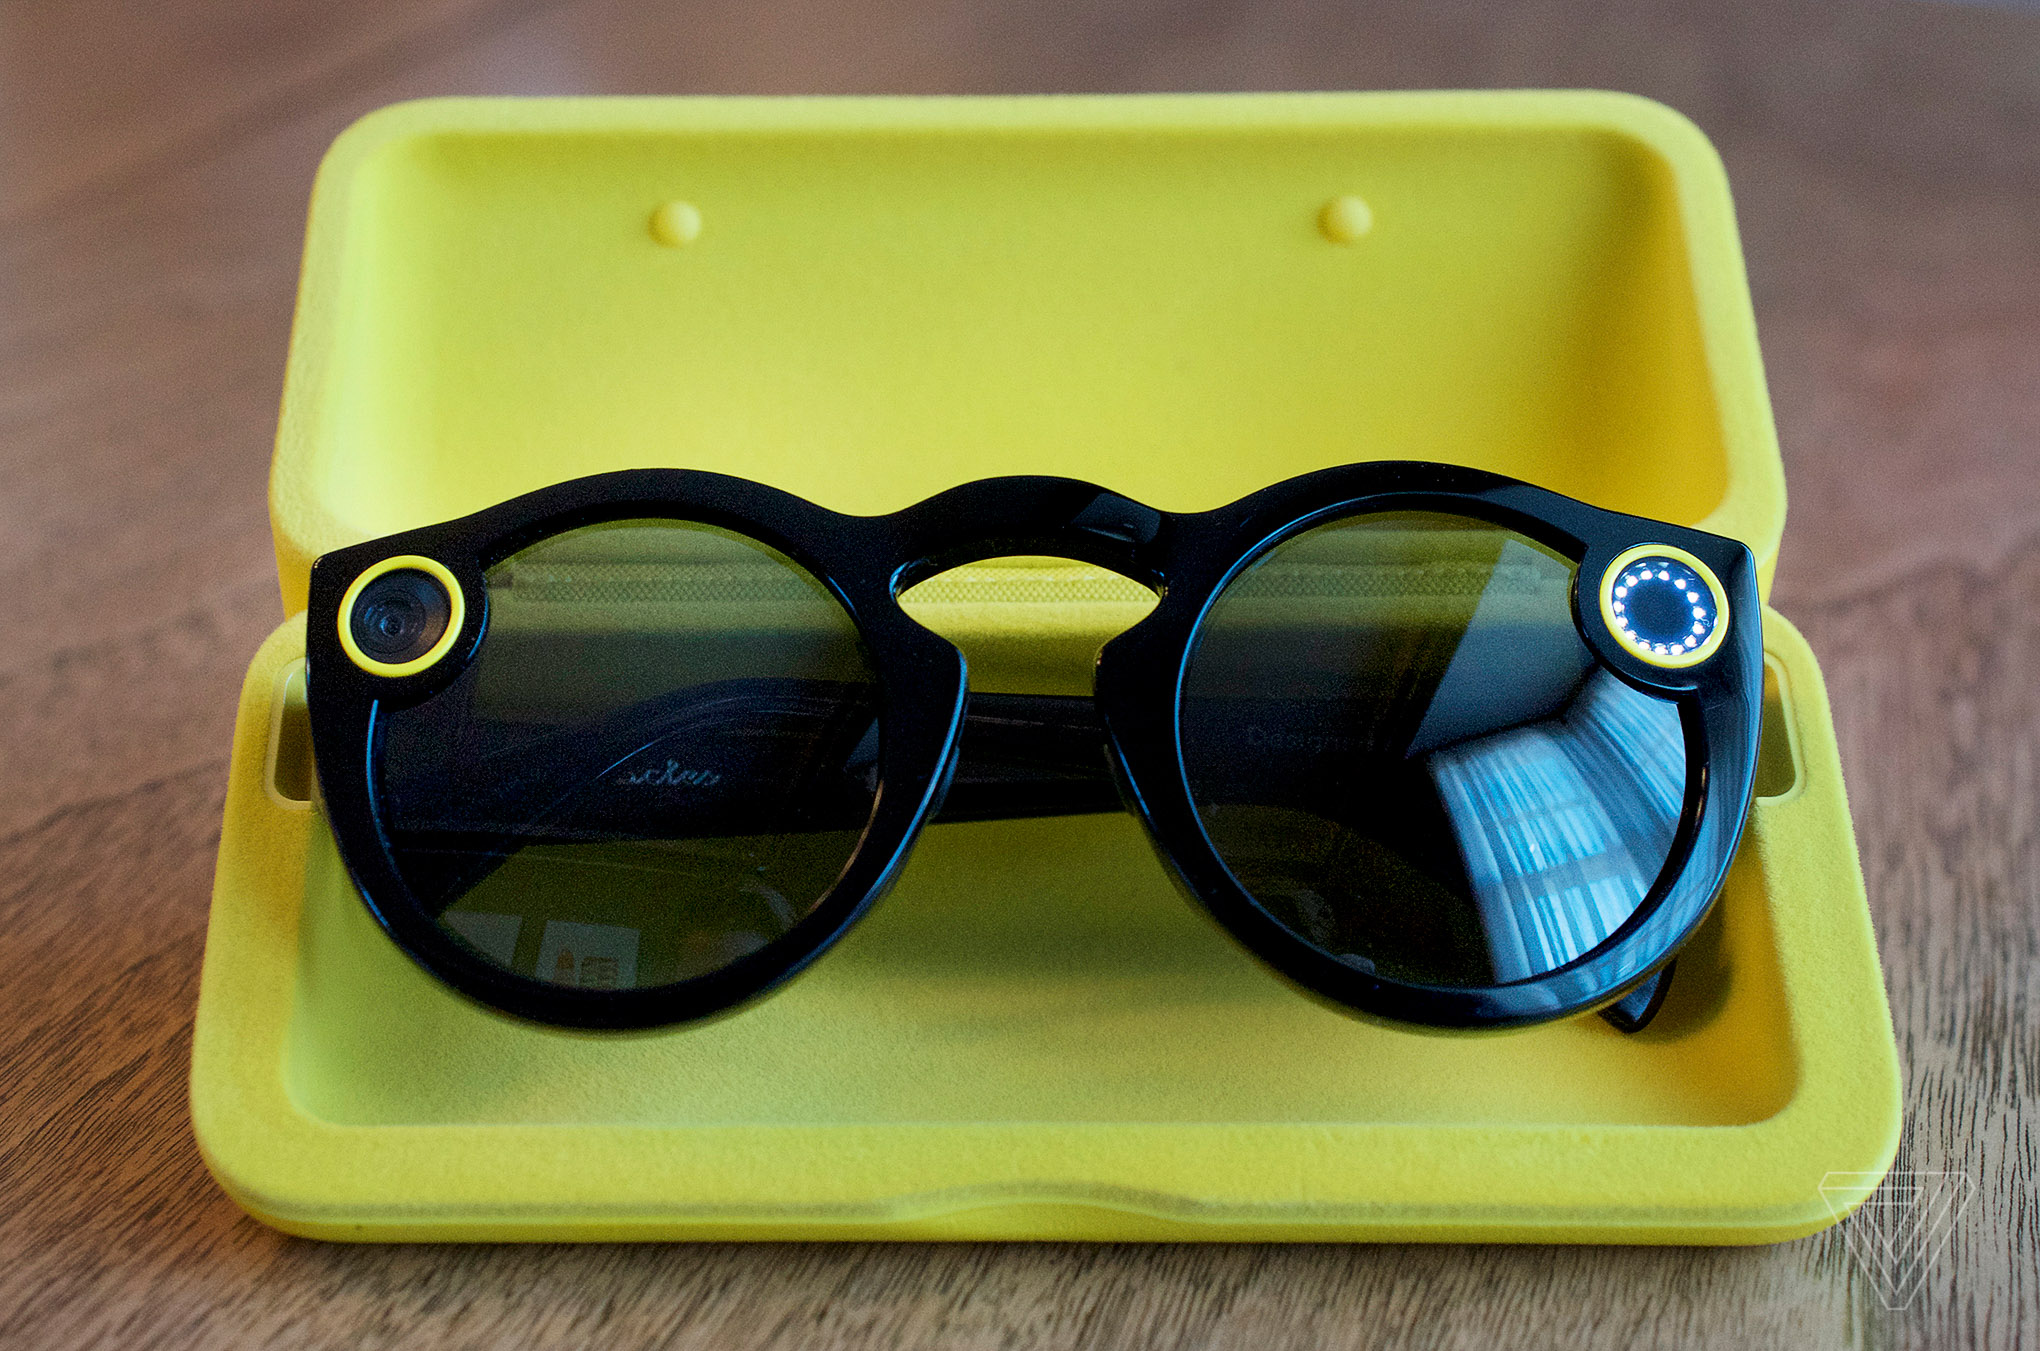 e94e5da588cf Snapchat Spectacles are here and they are ridiculously fun - The Verge